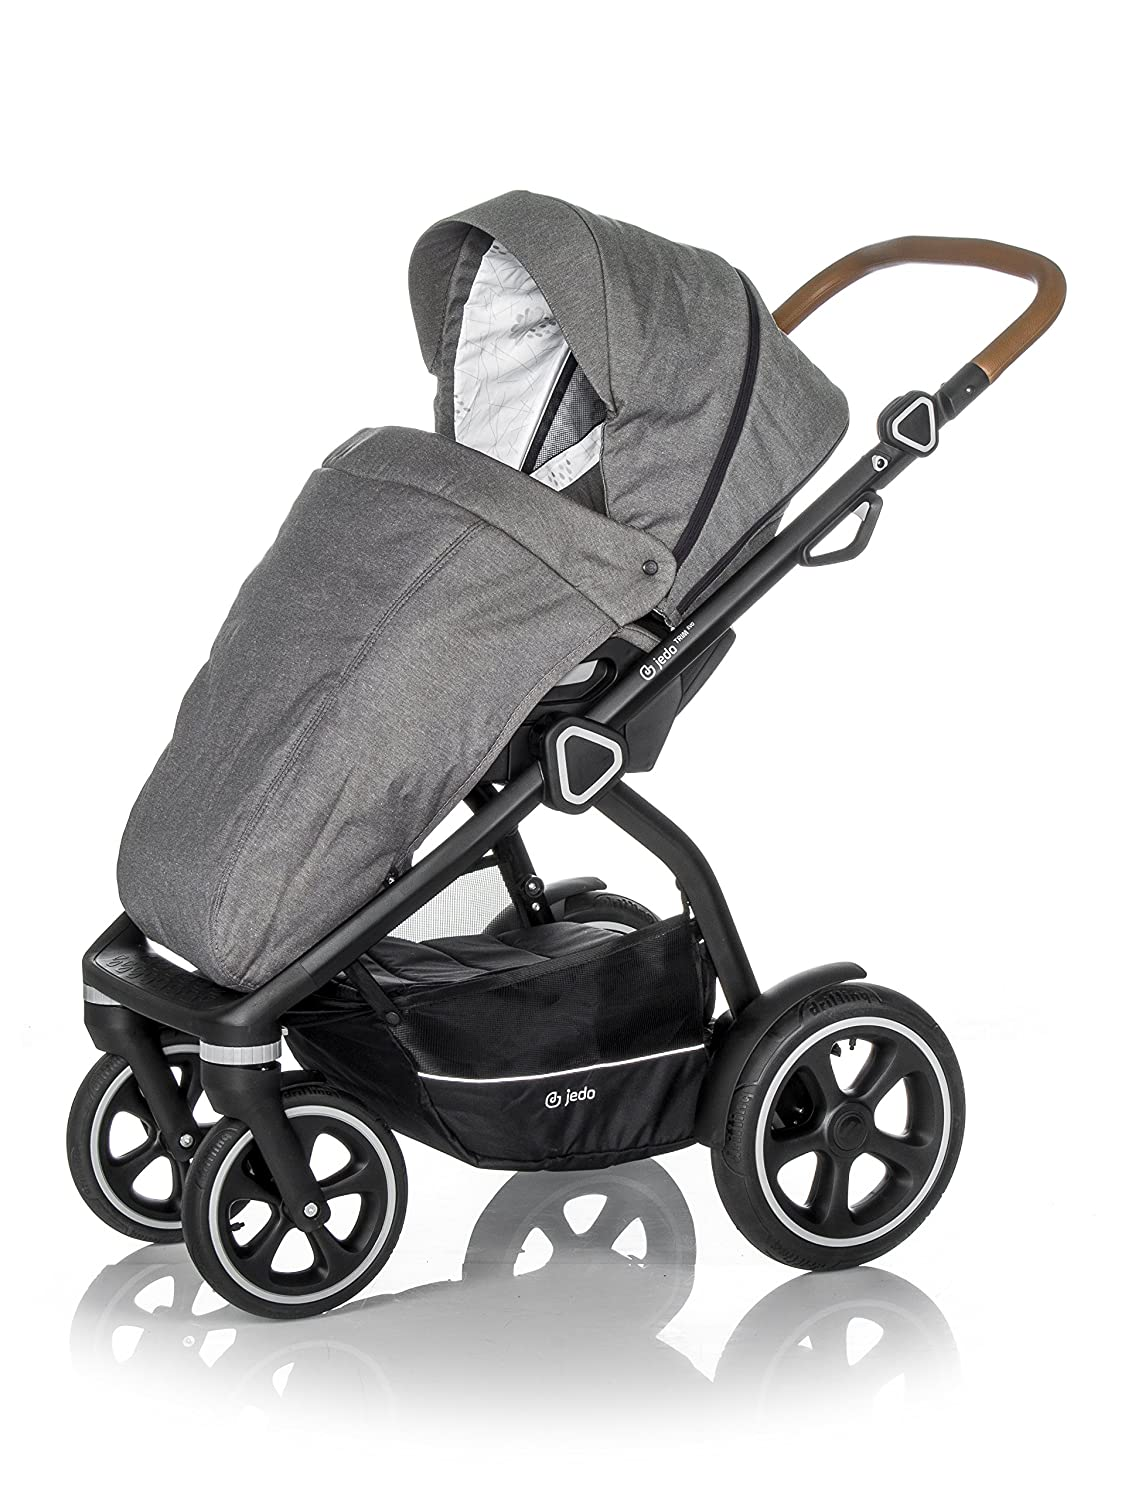 Baby stroller Jedo: photo and review of models, reviews 63